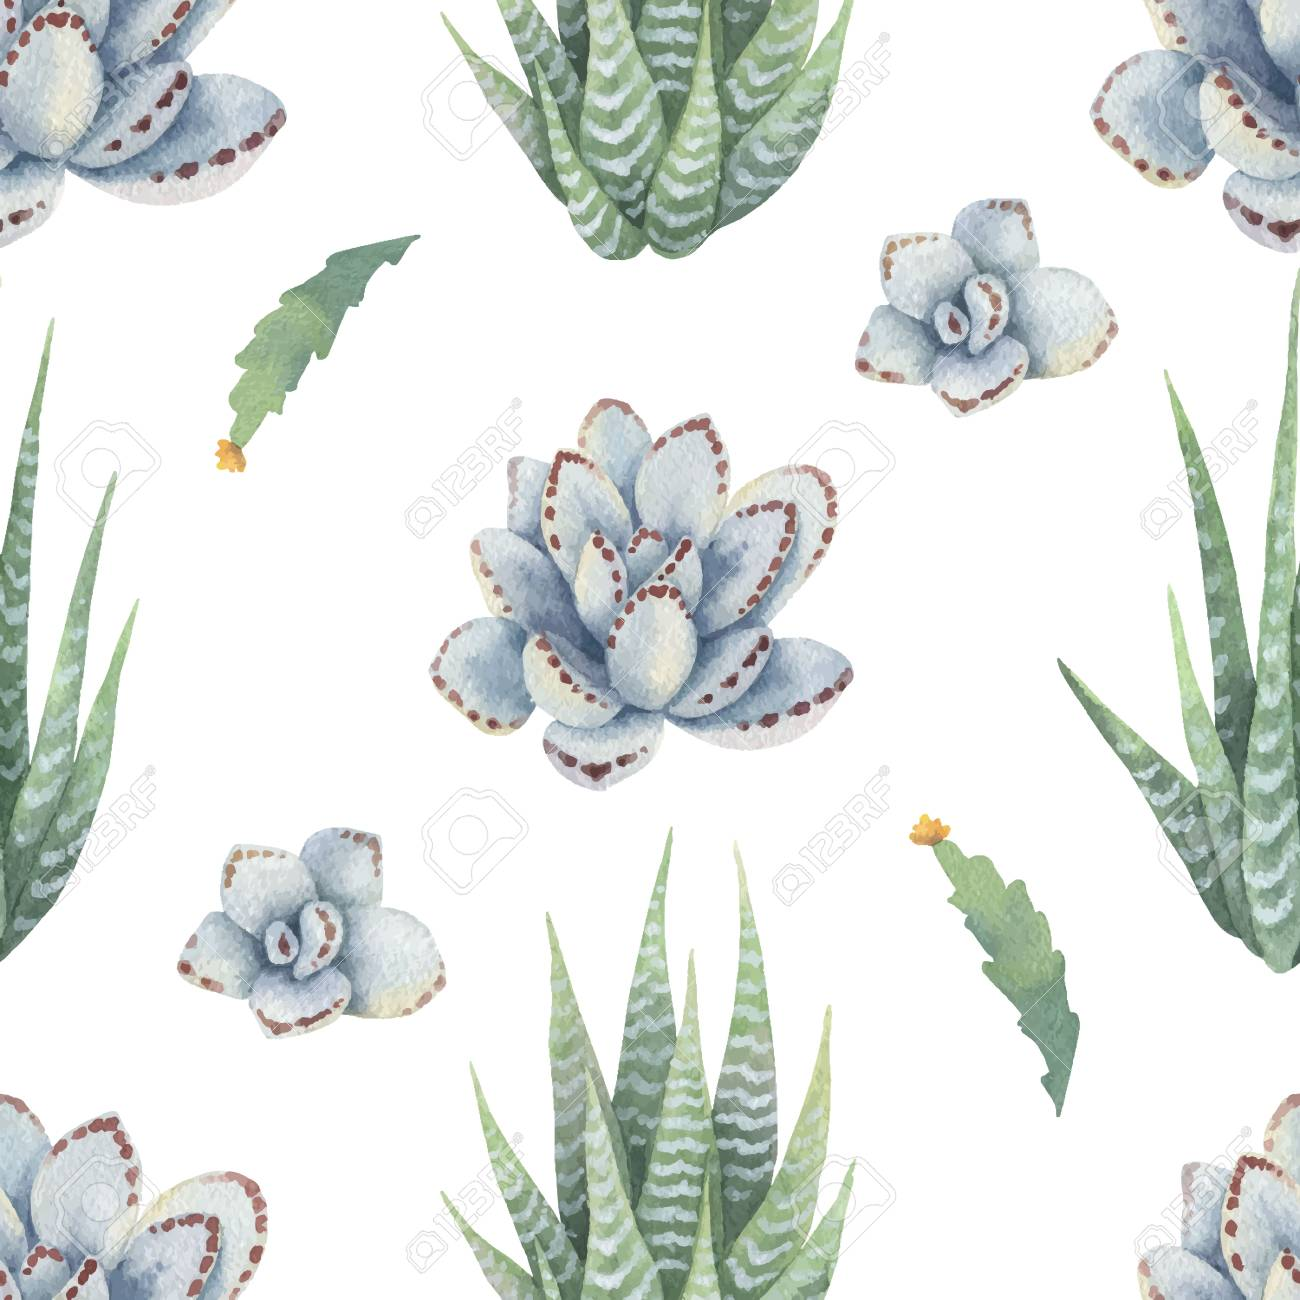 Watercolor Vector Seamless Pattern Of Cacti And Succulent Plants Royalty Free Cliparts Vectors And Stock Illustration Image 95752015